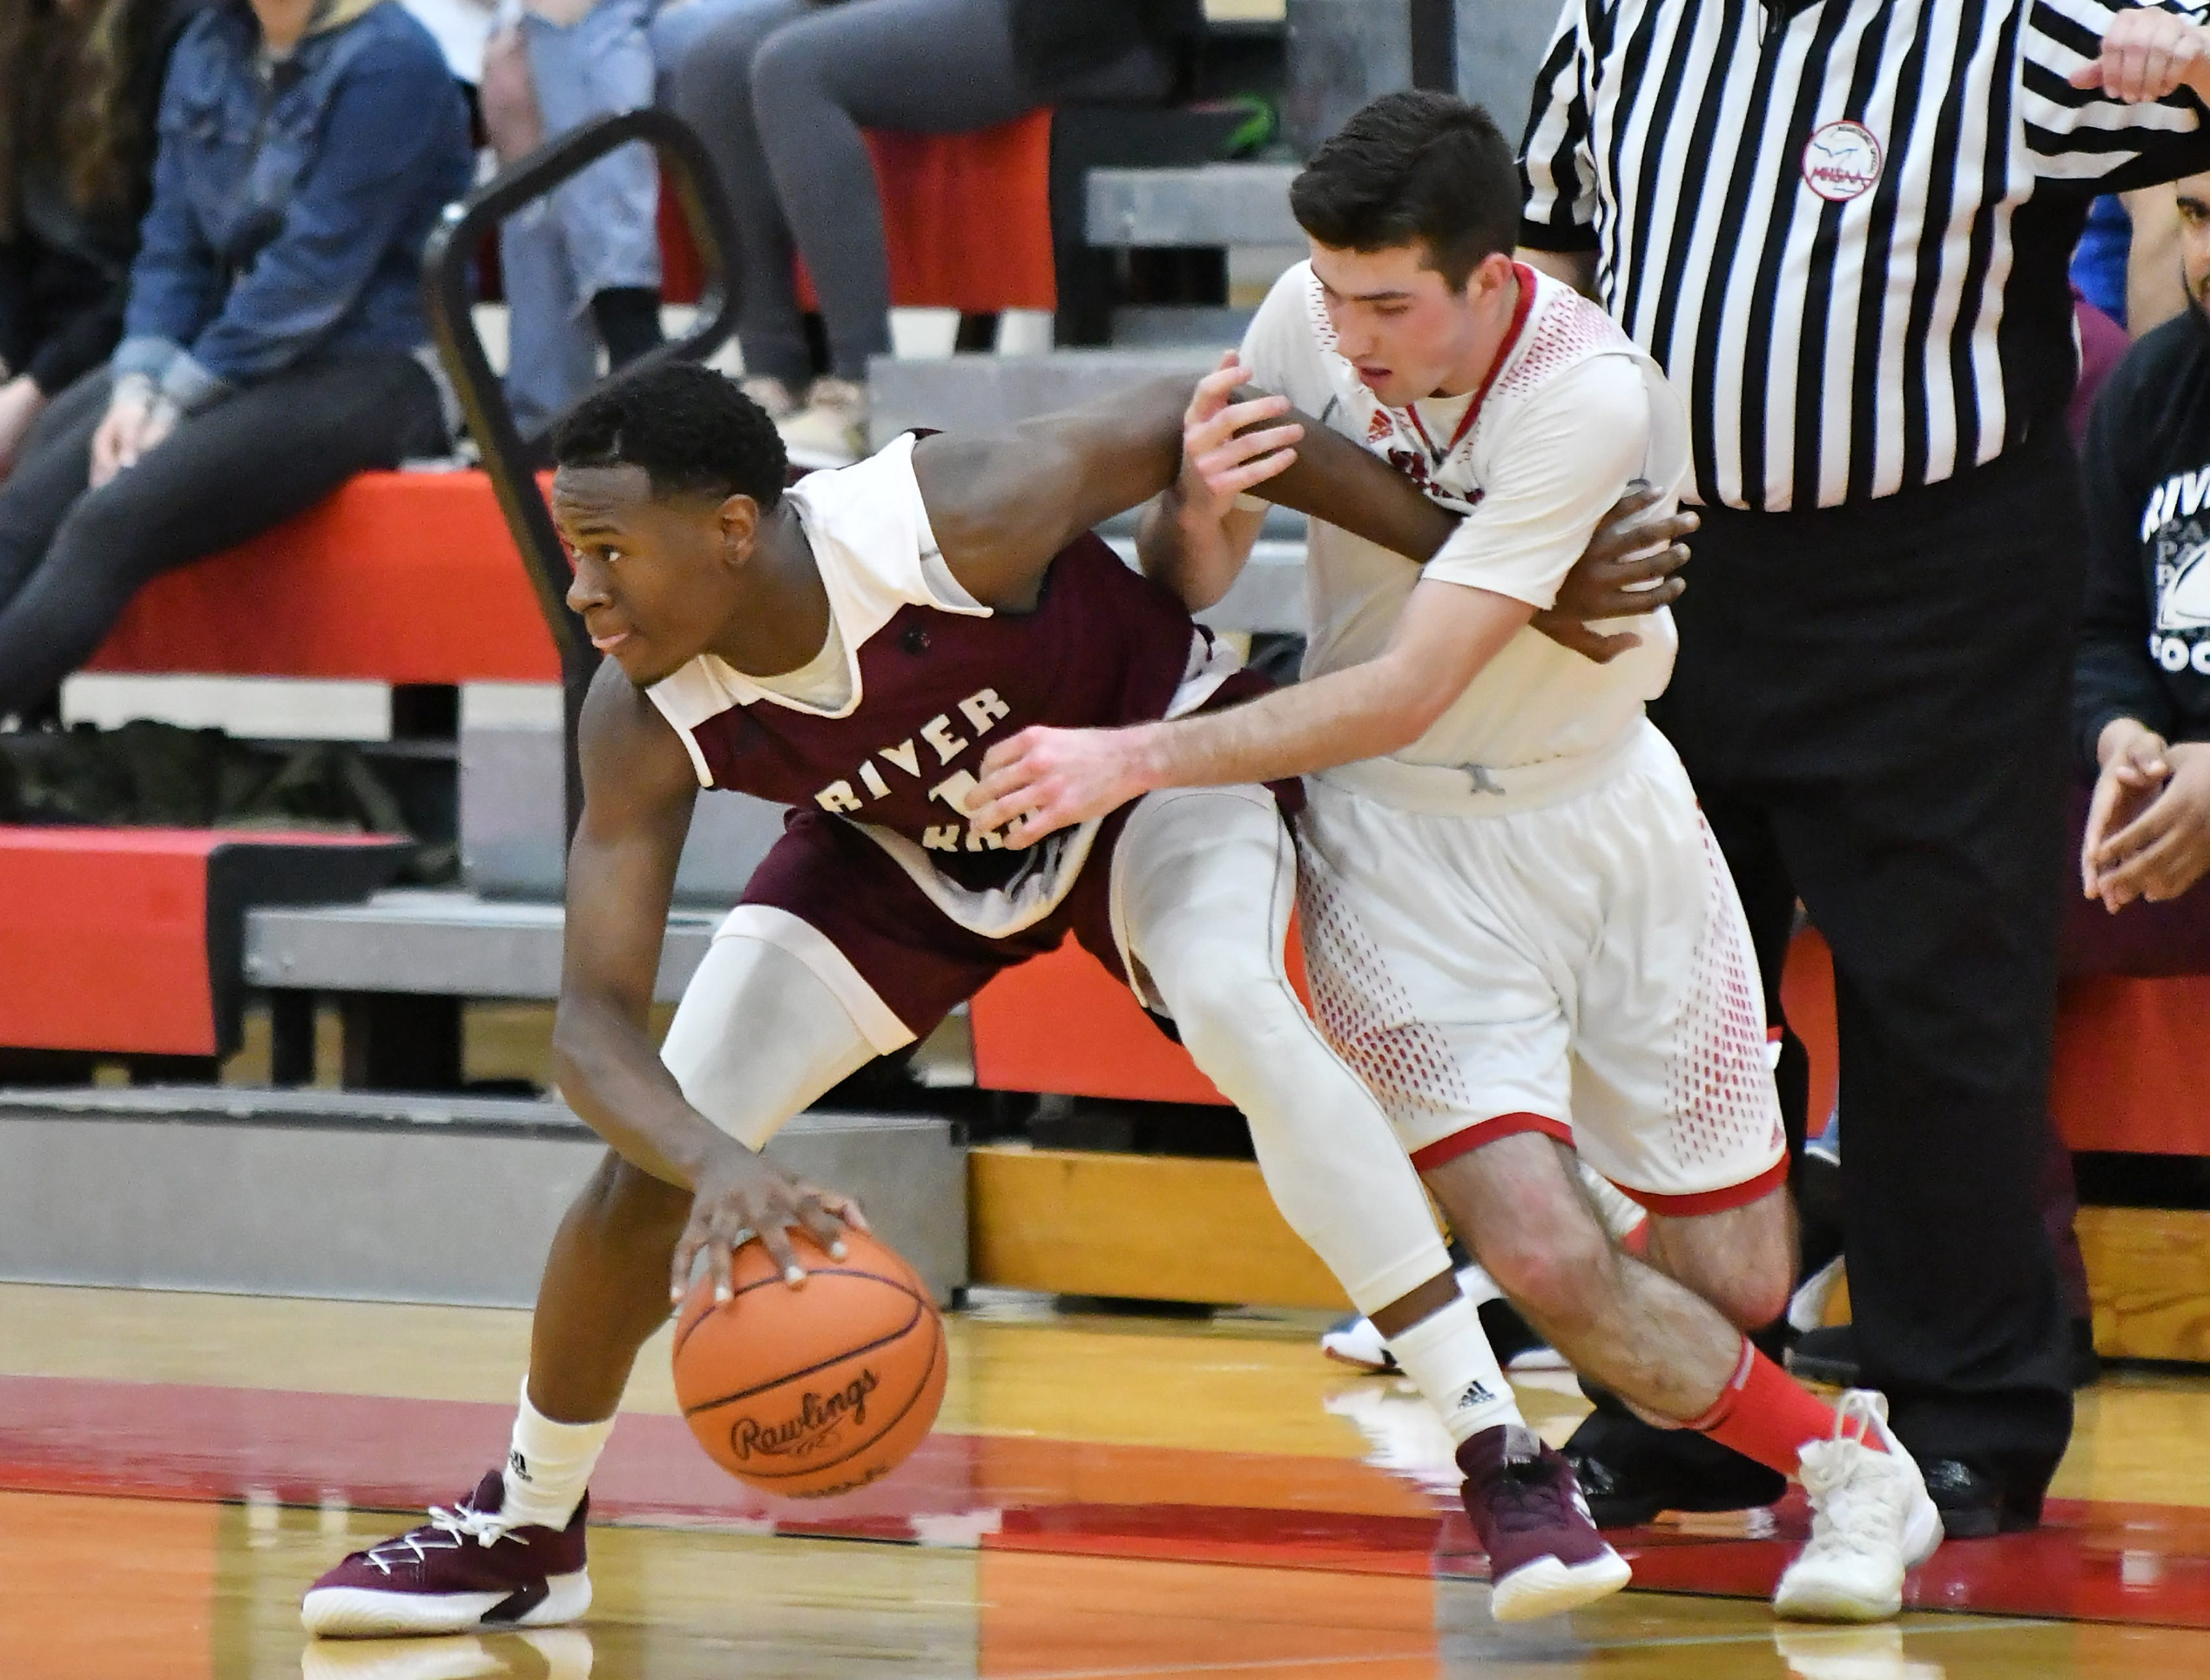 Divine Child's Jack Kenney, right, guards River Rouge's Donovan Freeman in the first half.